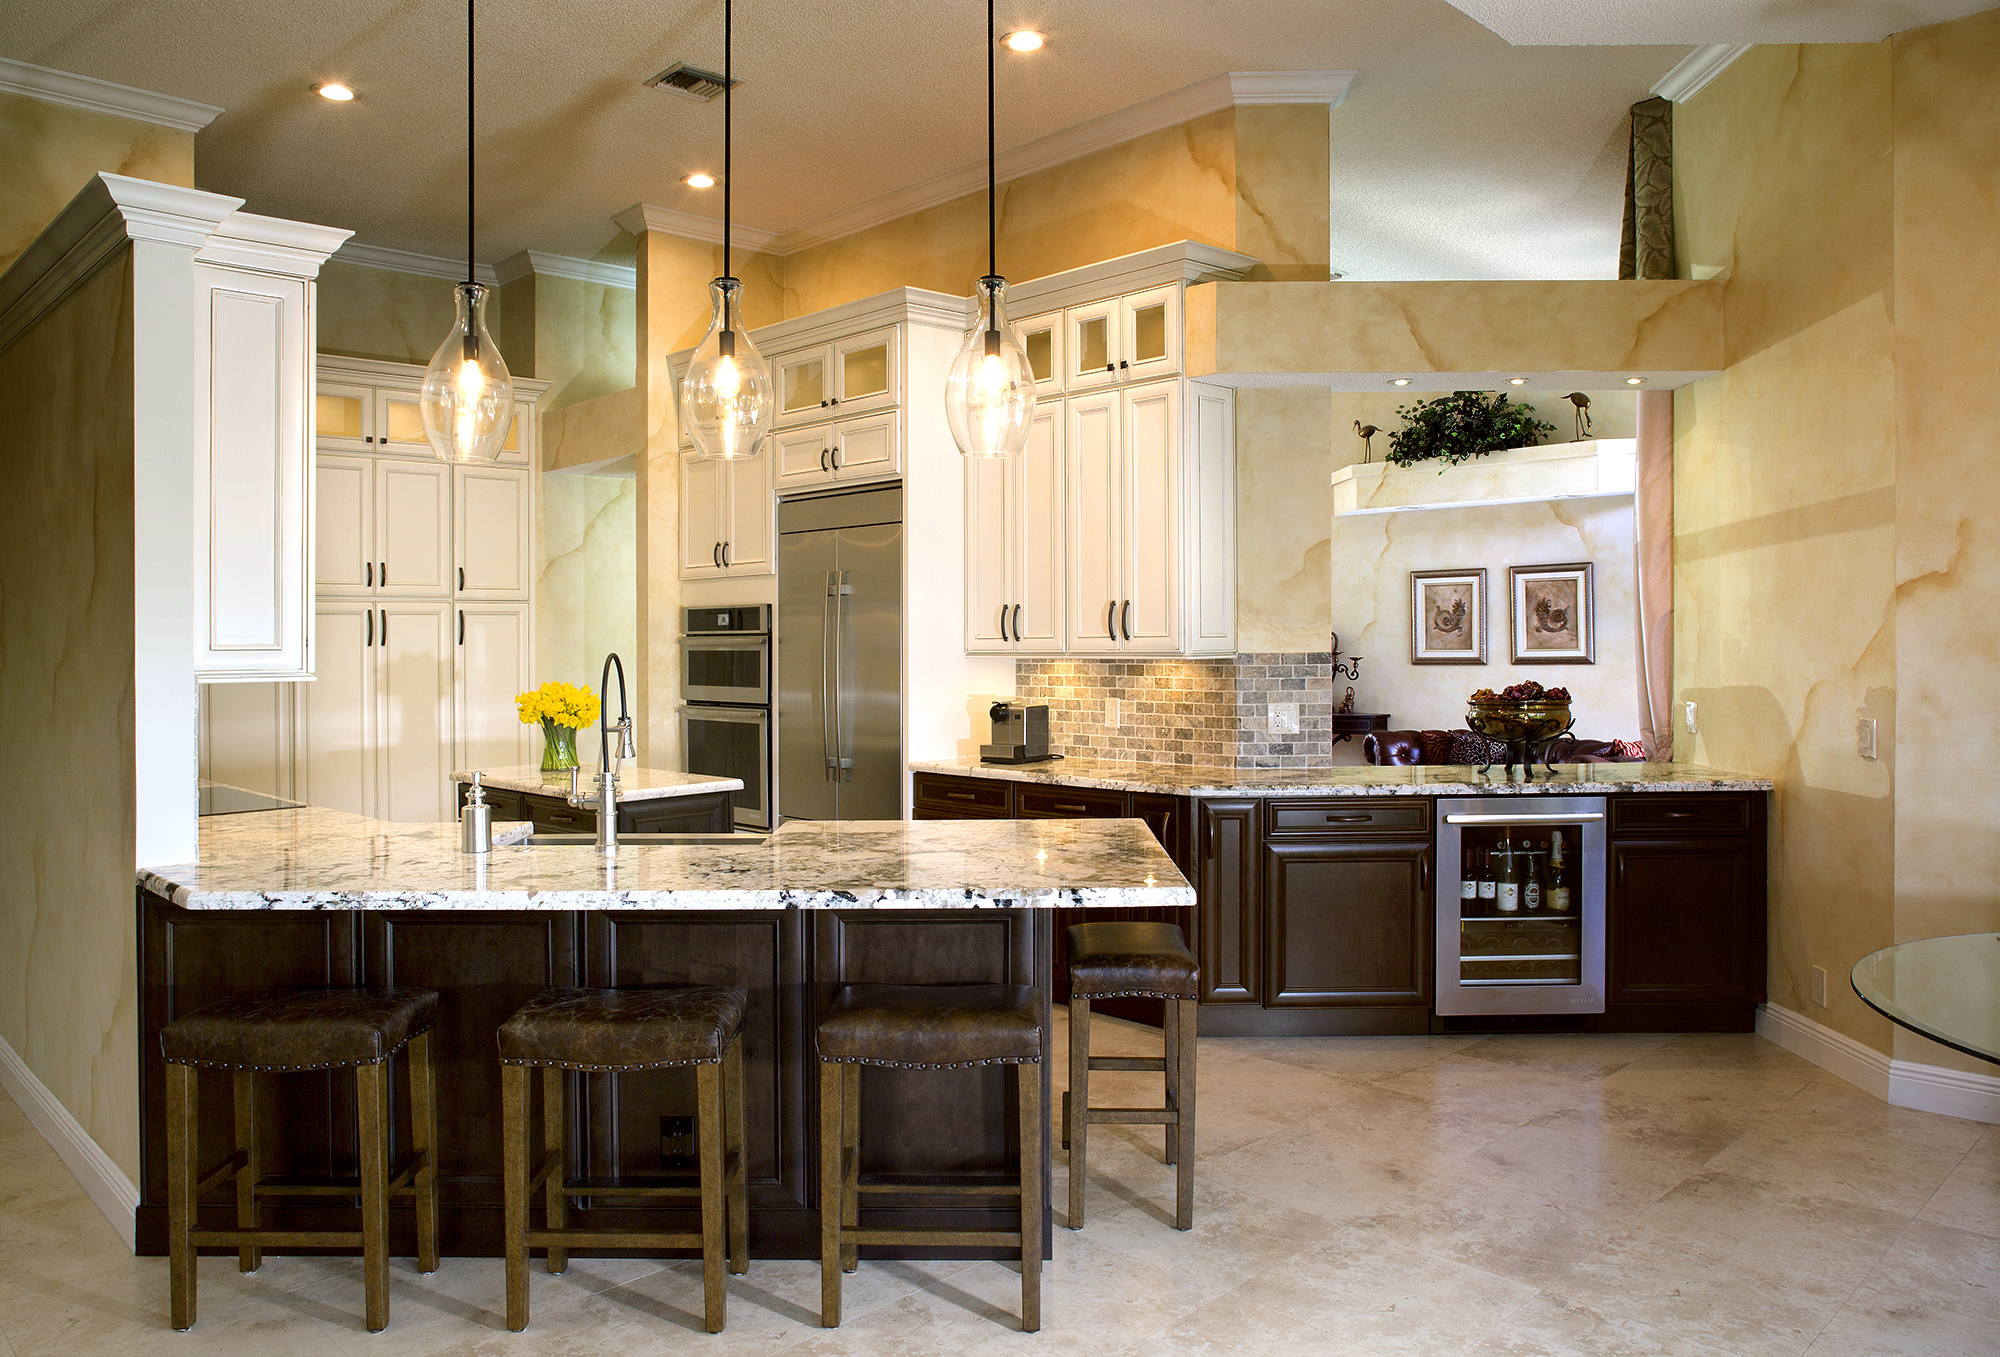 Painted Kitchen Cabinets in Soft Cream with Ebony Glaze and Stained Kitchen Cabinets in Espresso by Showplace Cabinetry